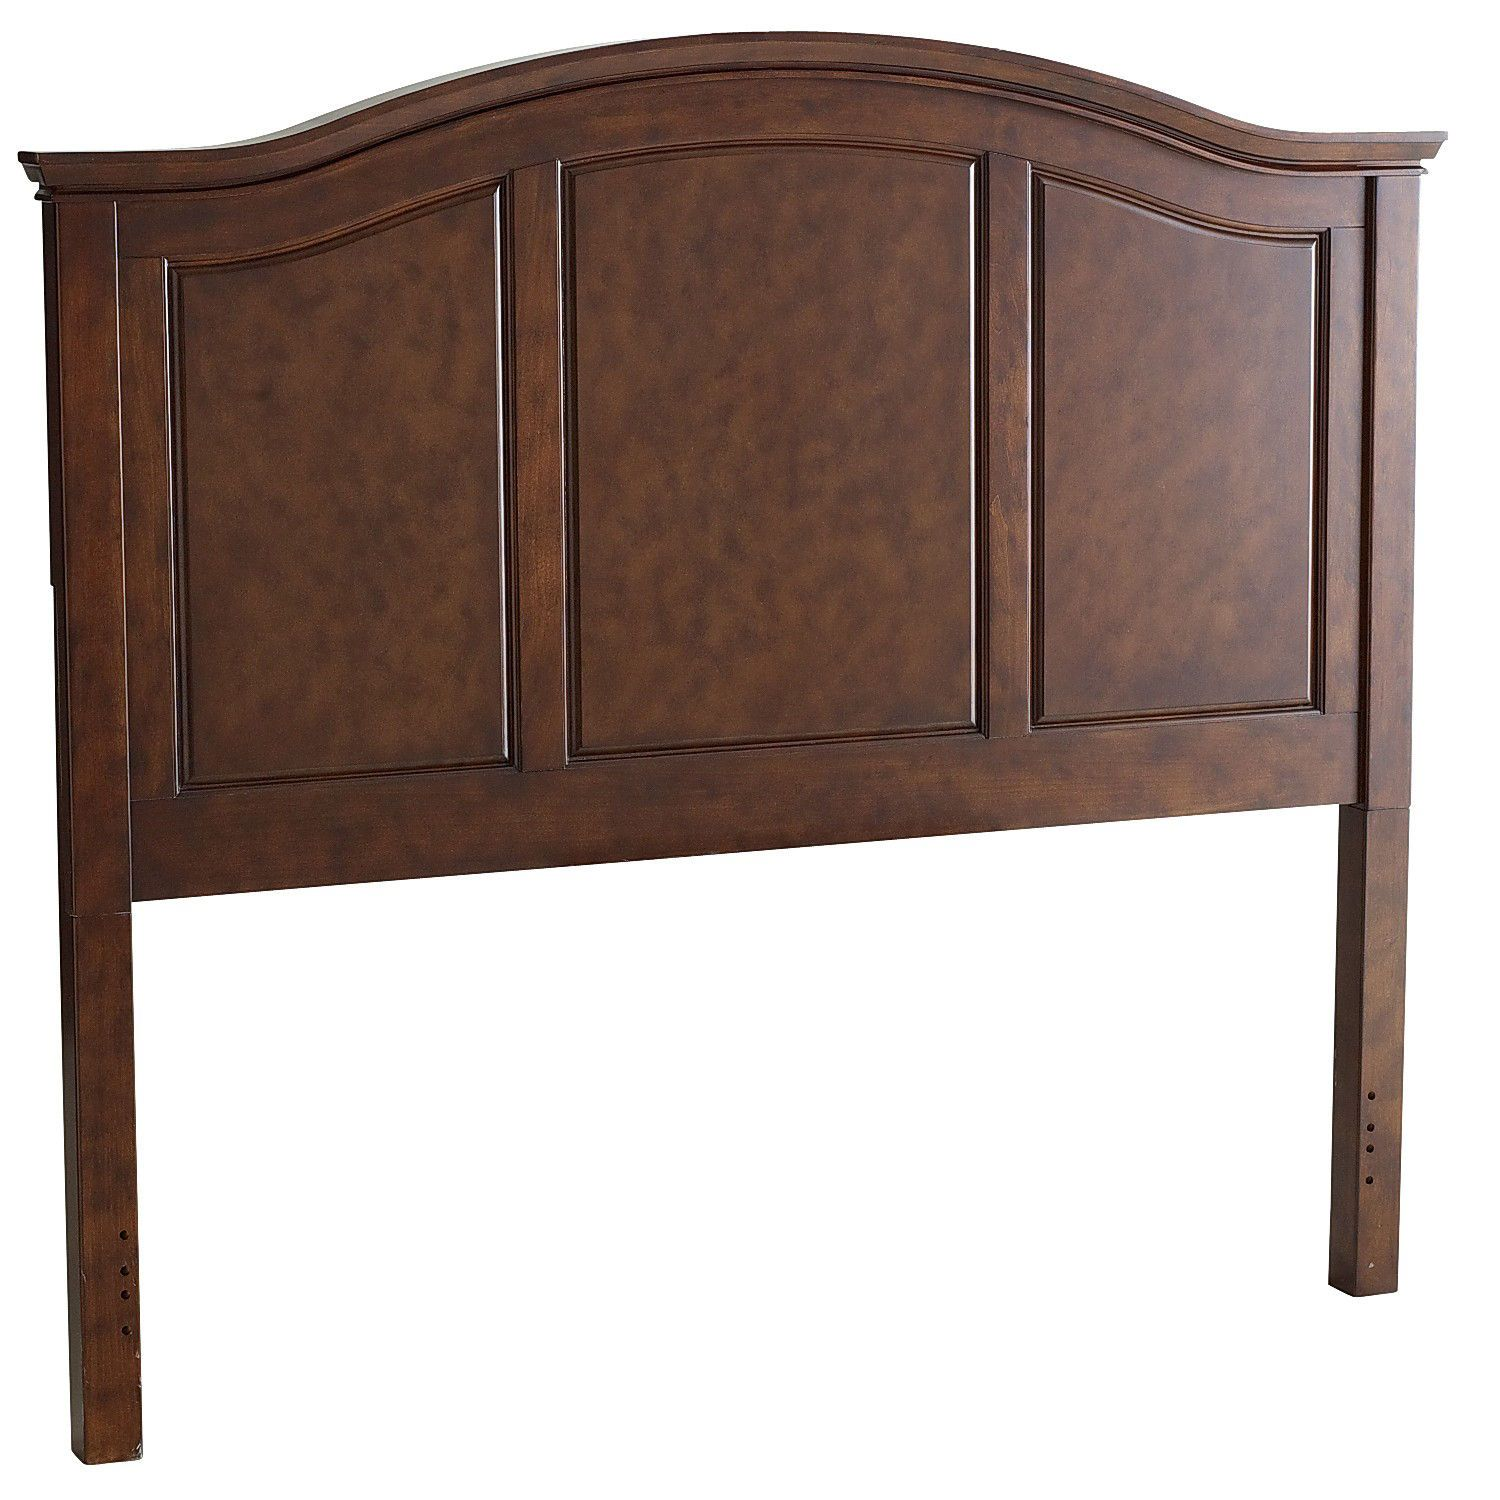 Ashworth Headboards Chestnut Brown Headboard Bed Frame And